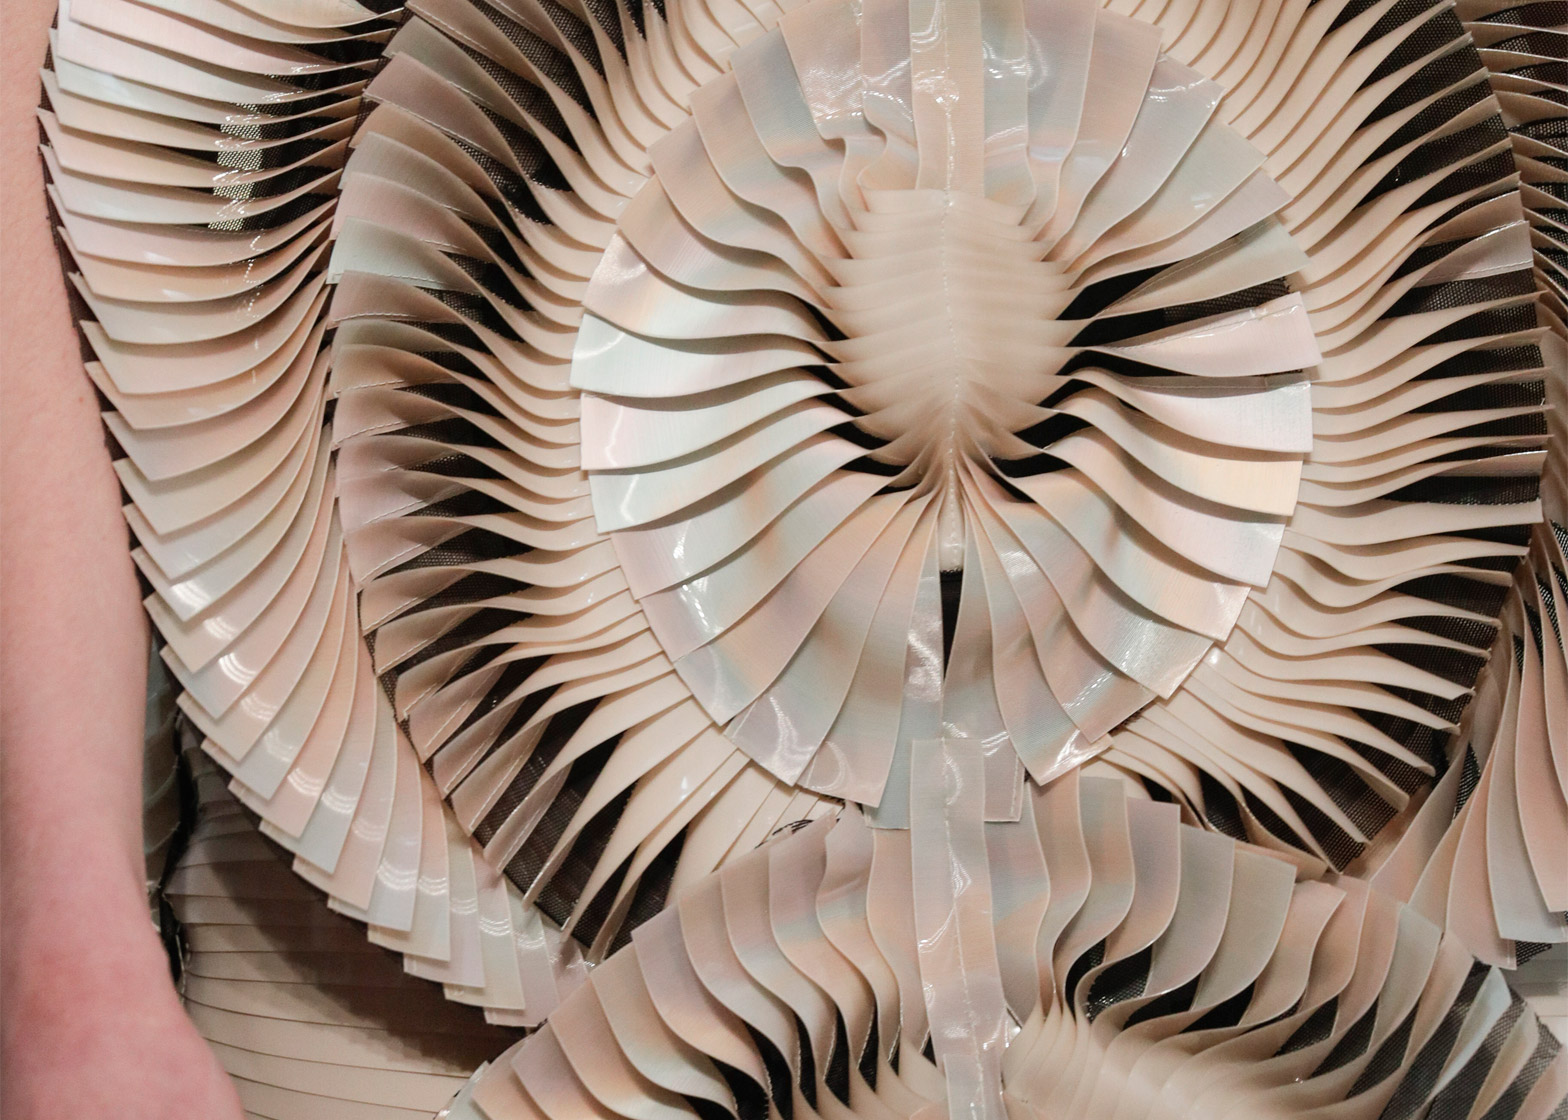 Glass bubble dress features in Iris van Herpen's Autumn Winter ...